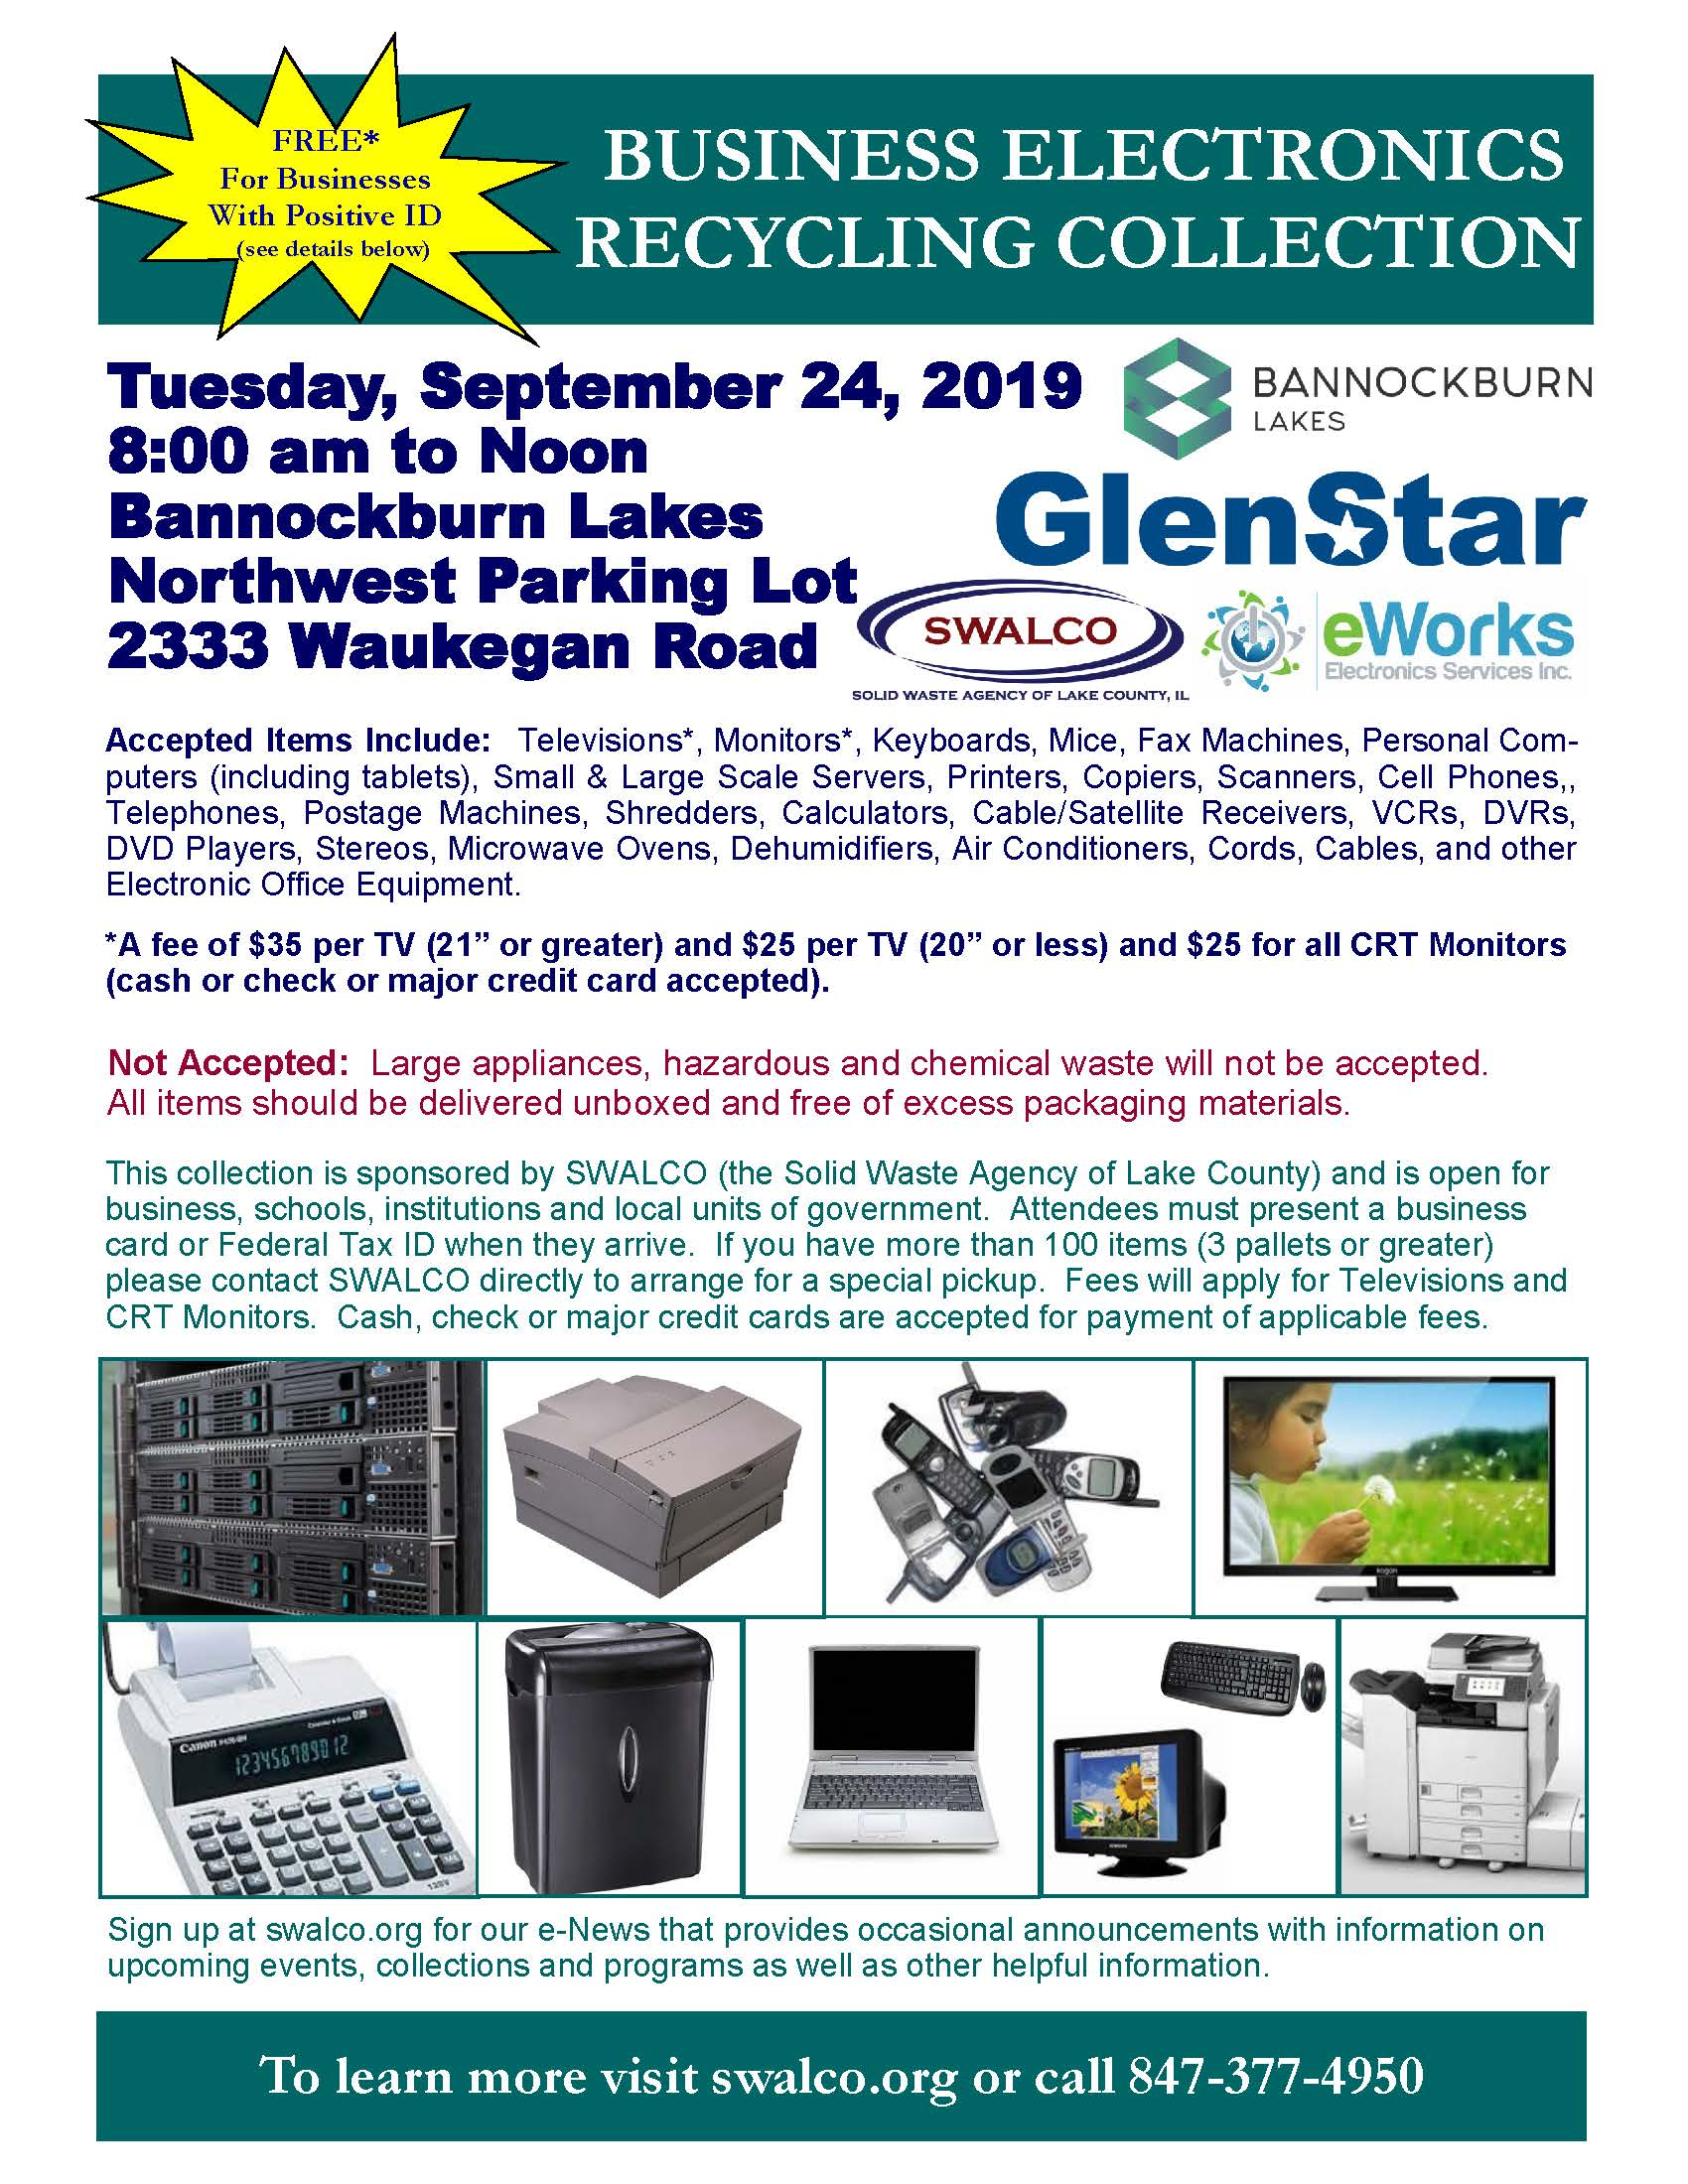 Electronics E-Works Village of Bannockburn Sep 24, 2019